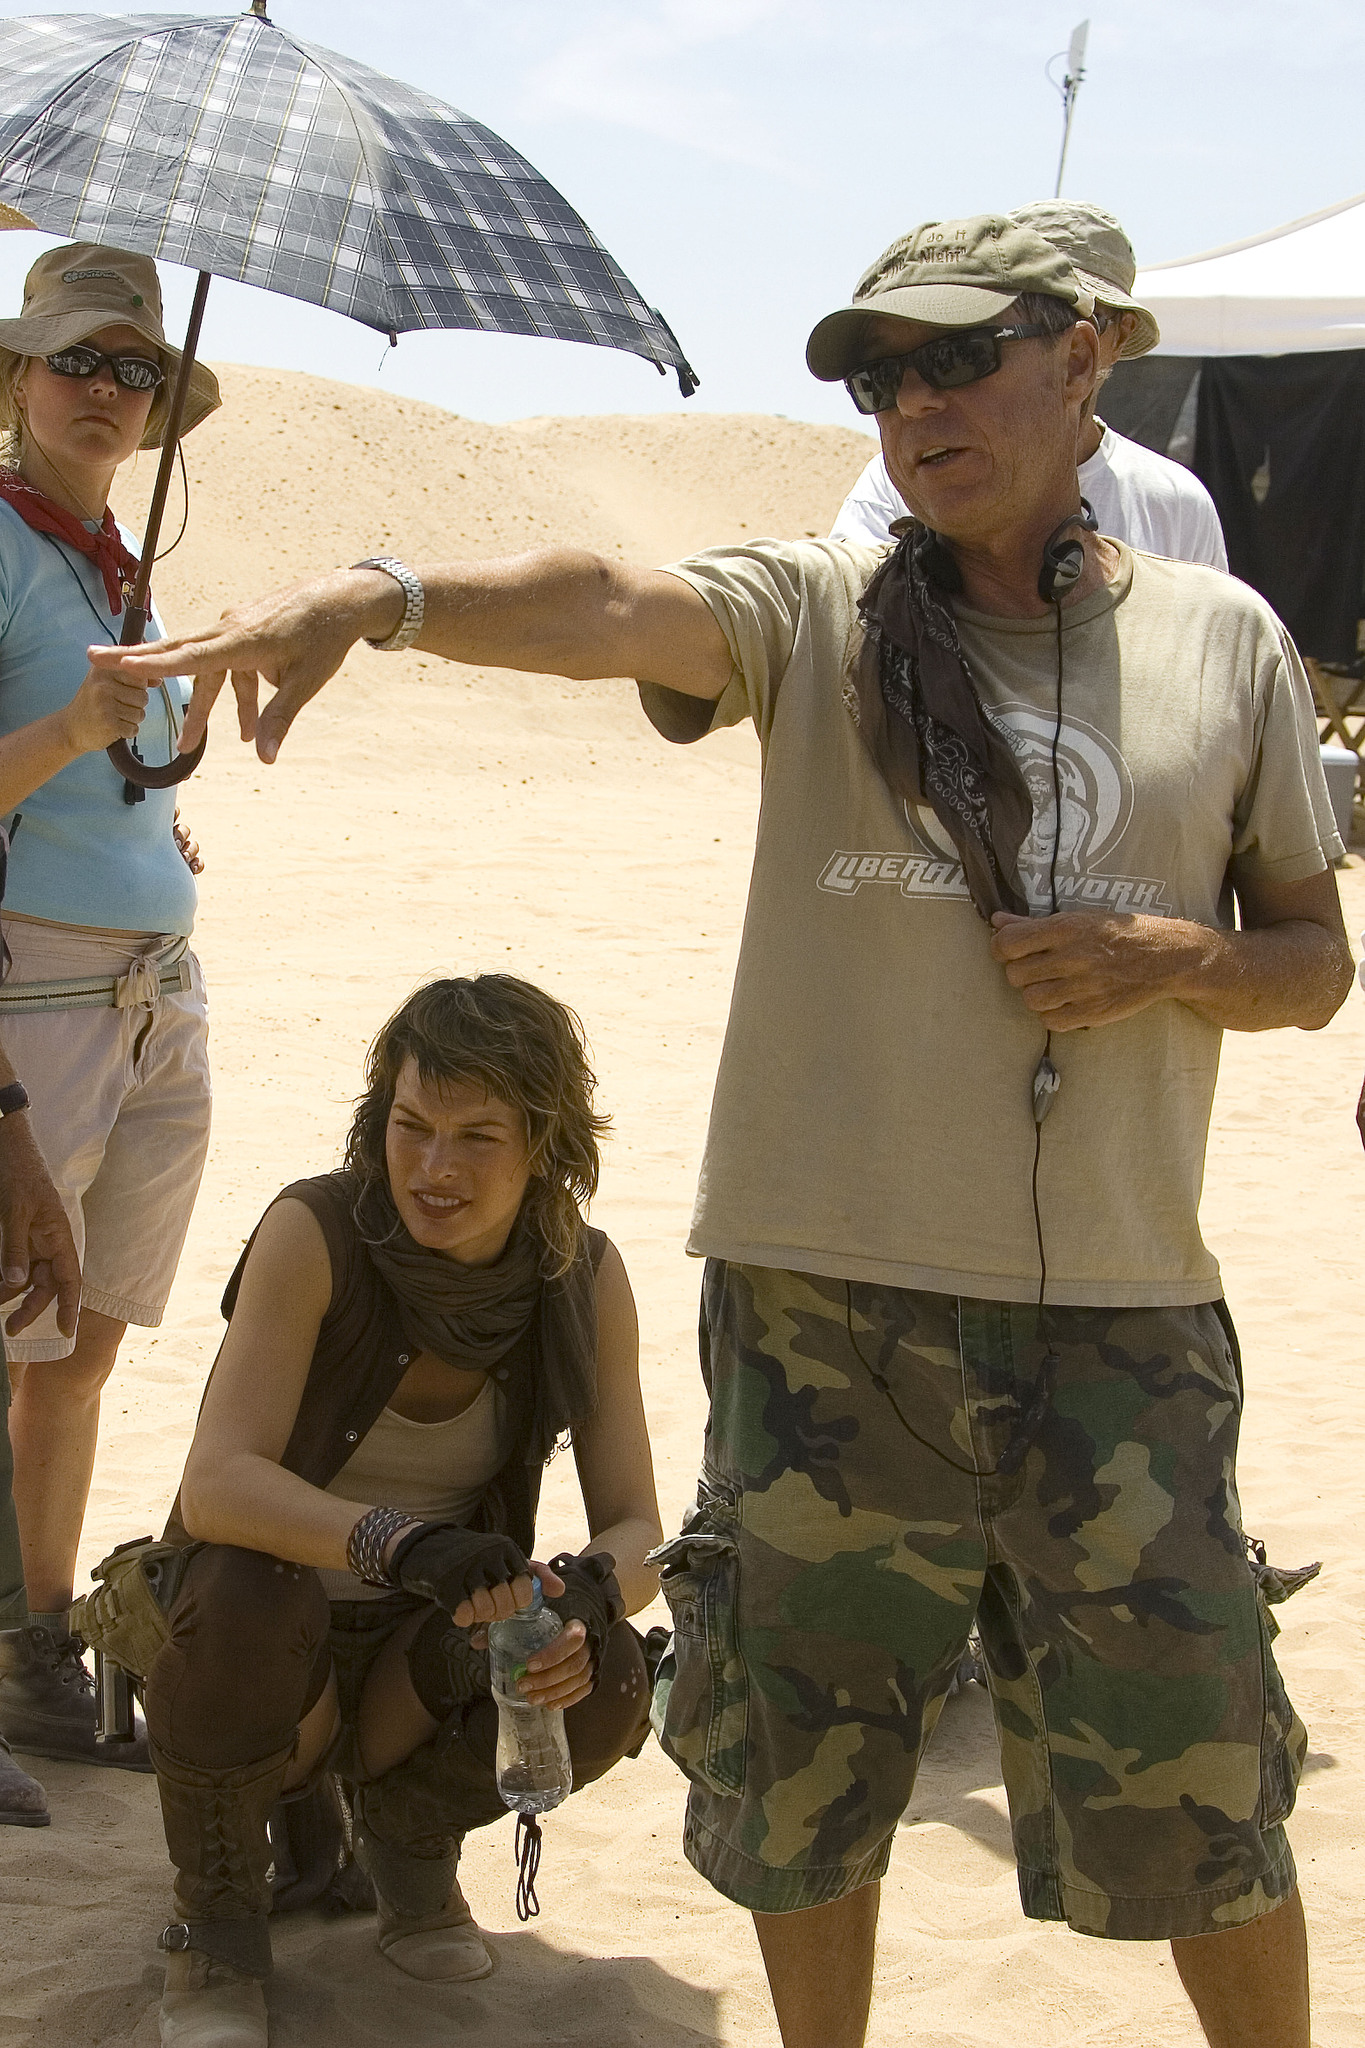 Milla Jovovich and Russell Mulcahy in Resident Evil: Extinction (2007)